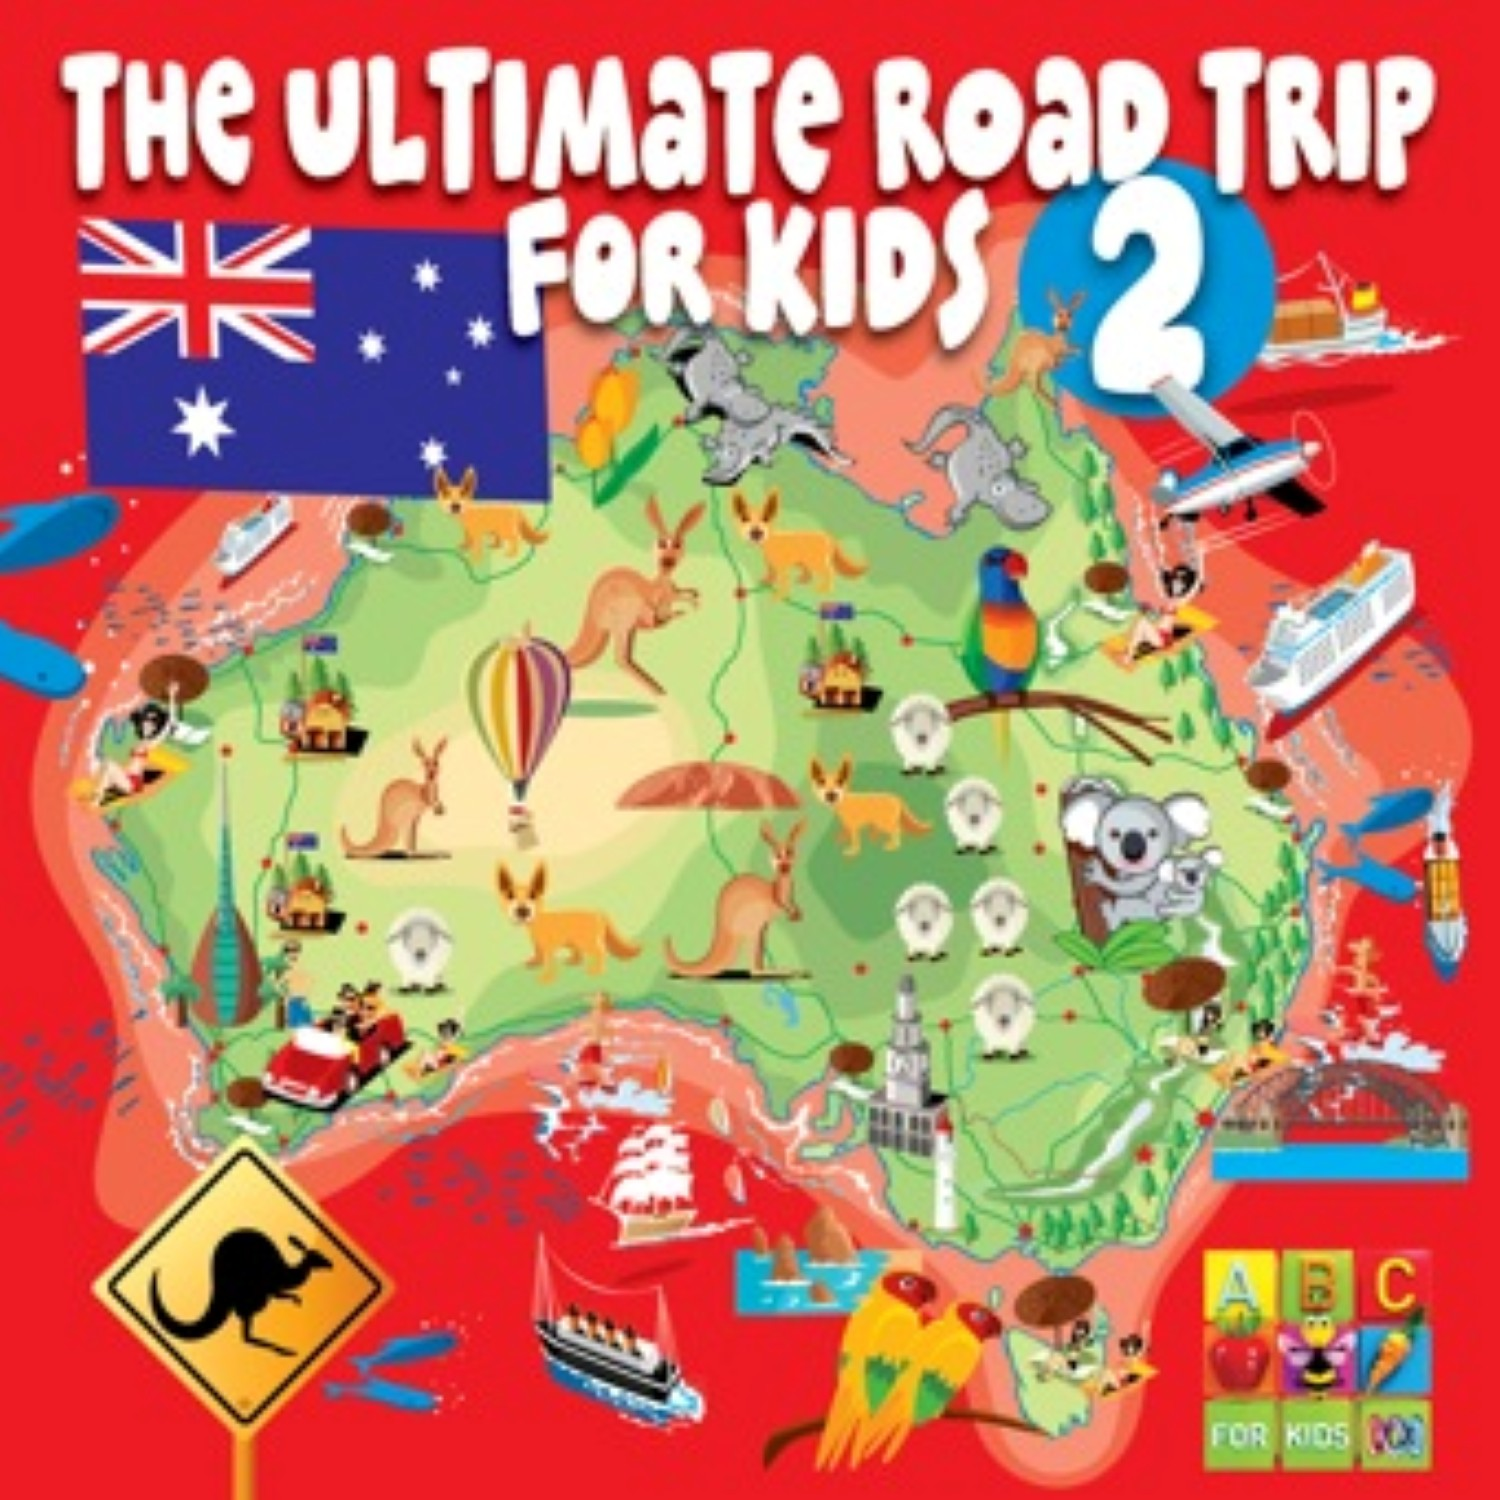 Rock Road Trip The Ultimate Collection: The Ultimate Roadtrip For Kids Vol 2